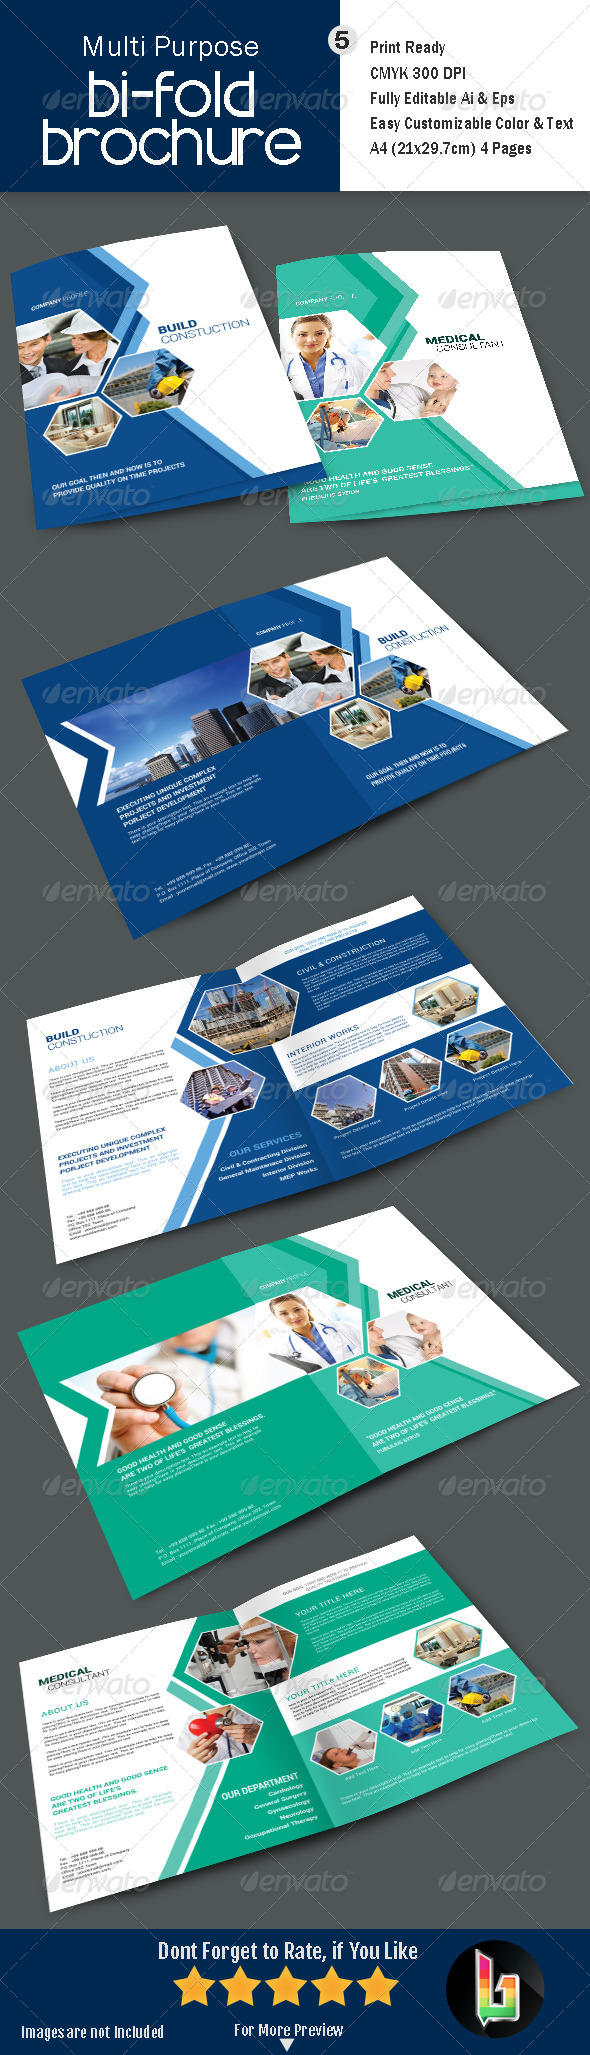 GraphicRiver Multi Purpose Bi-Fold Brochre V5 7652906